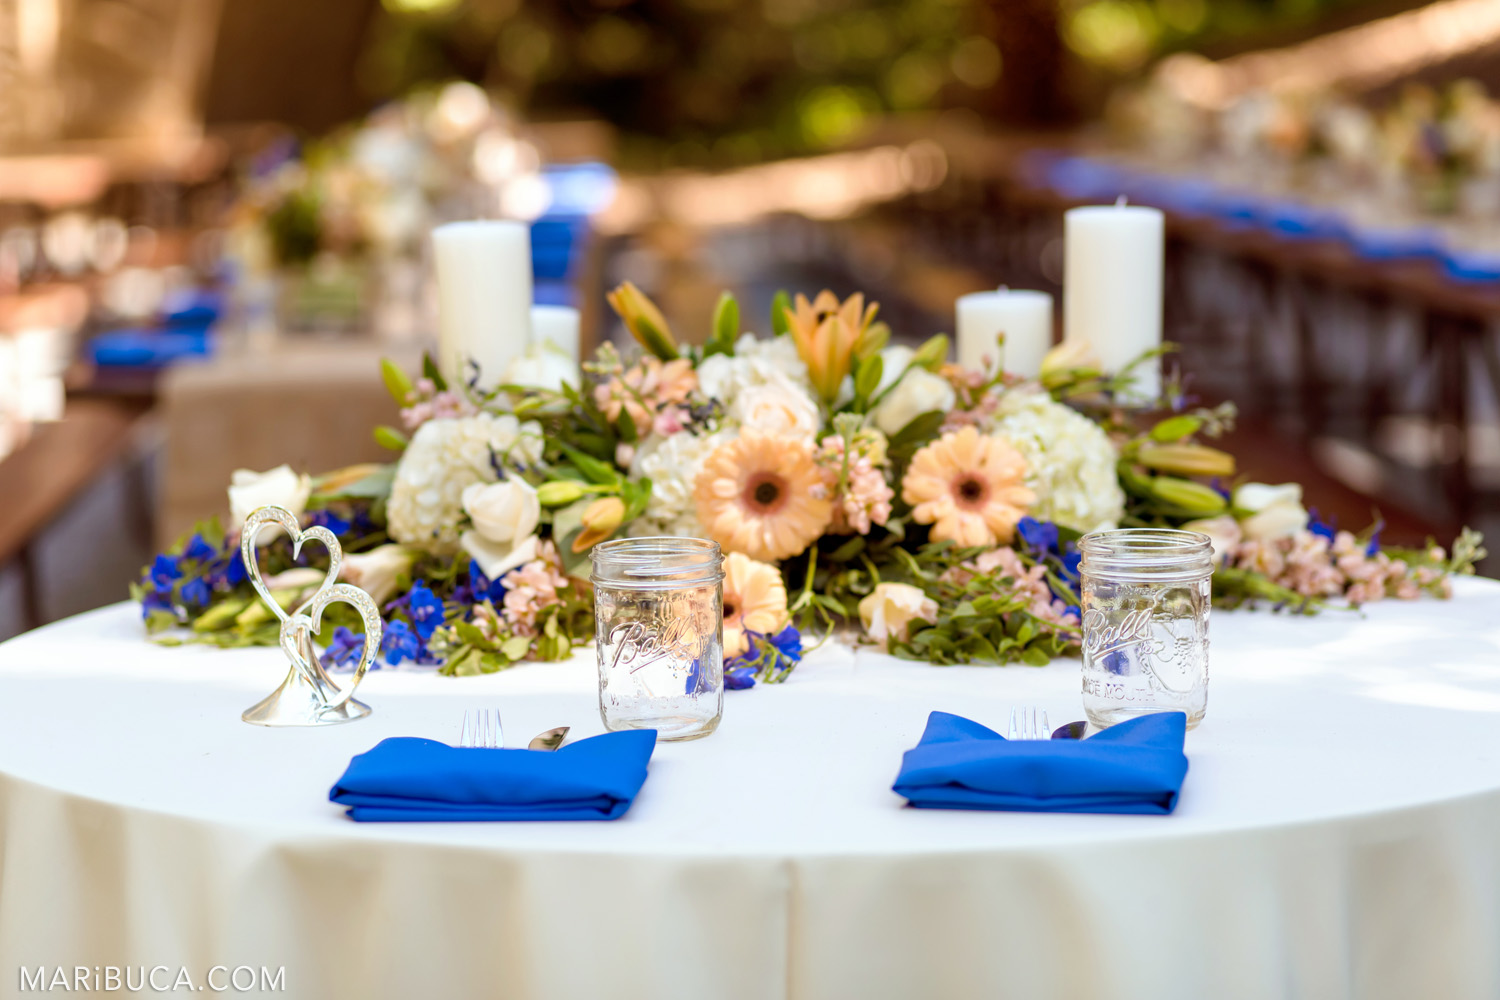 Wedding decoration of tables with white tablecloths, navy blue napkins, white candles in the Saratoga Springs Wedding